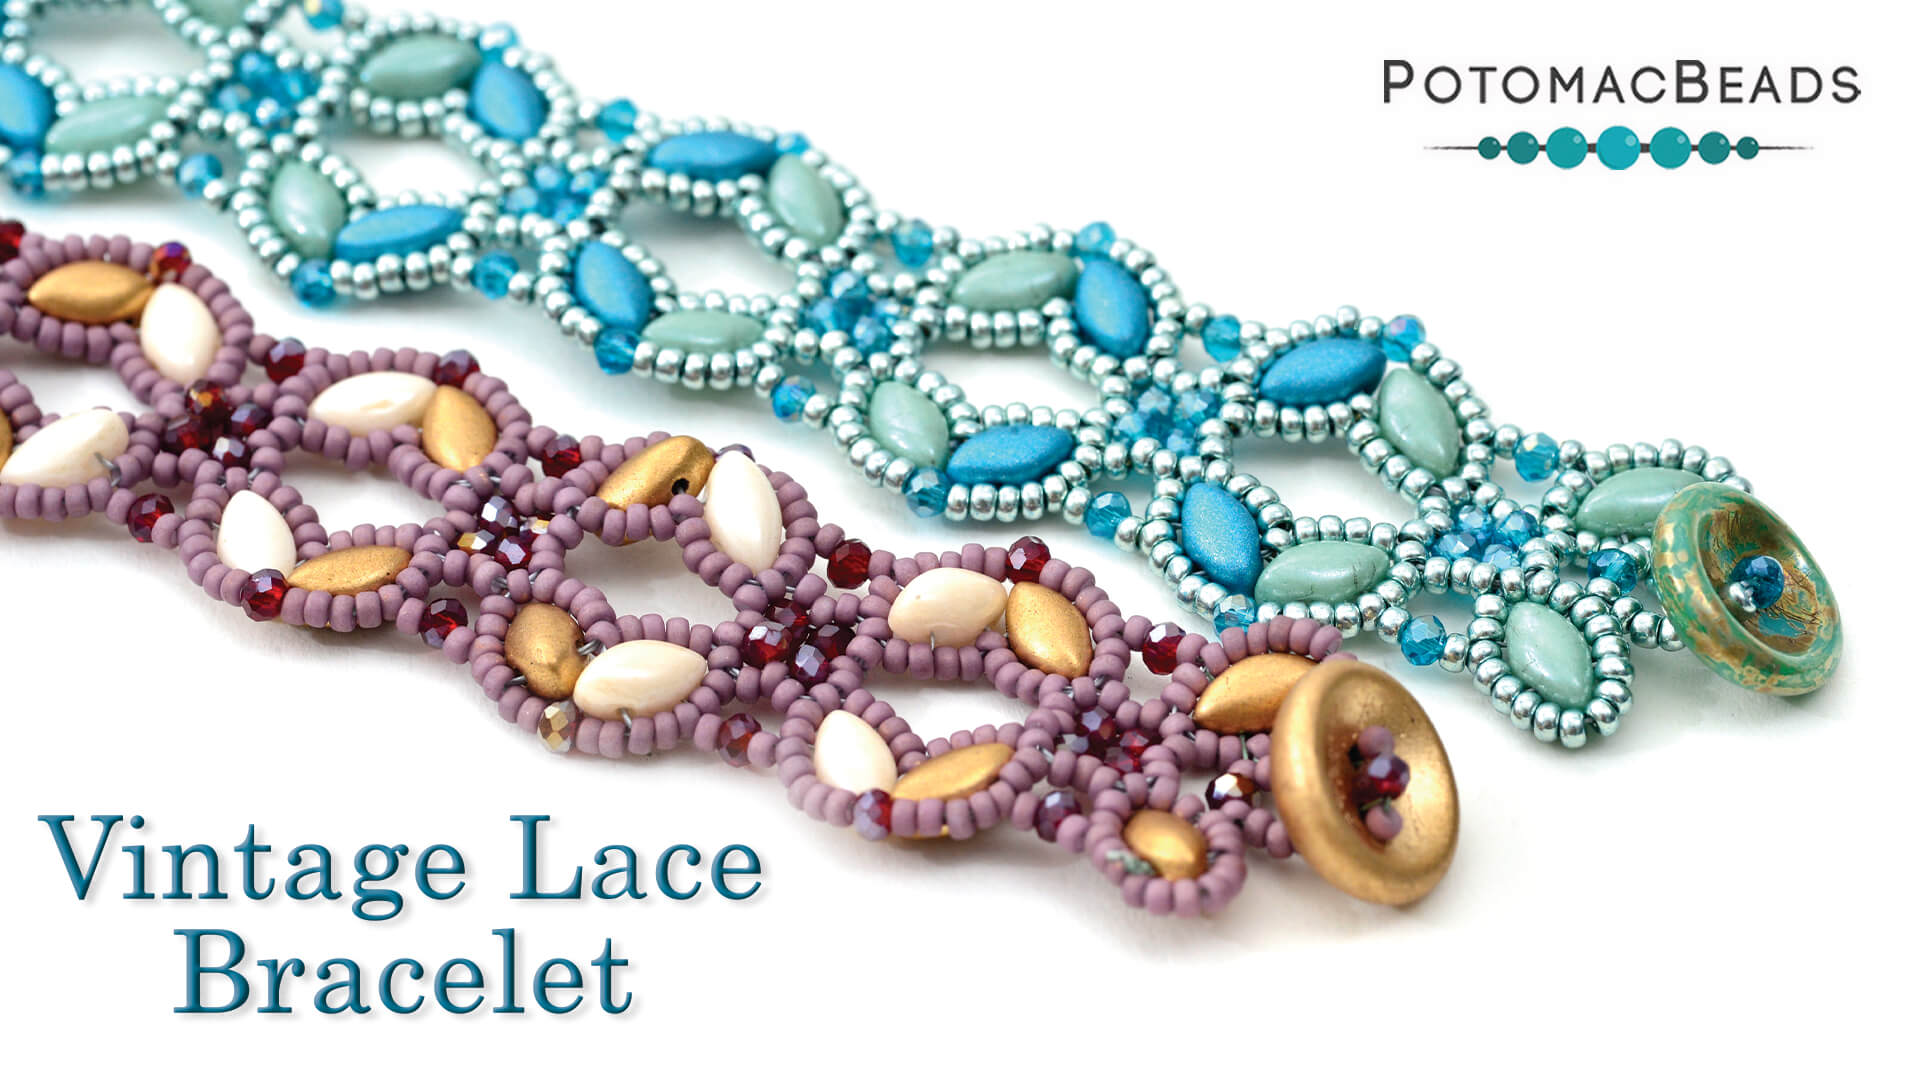 How to Bead Jewelry / Beading Tutorials & Jewel Making Videos / Bracelet Projects / Vintage Lace Bracelet Tutorial